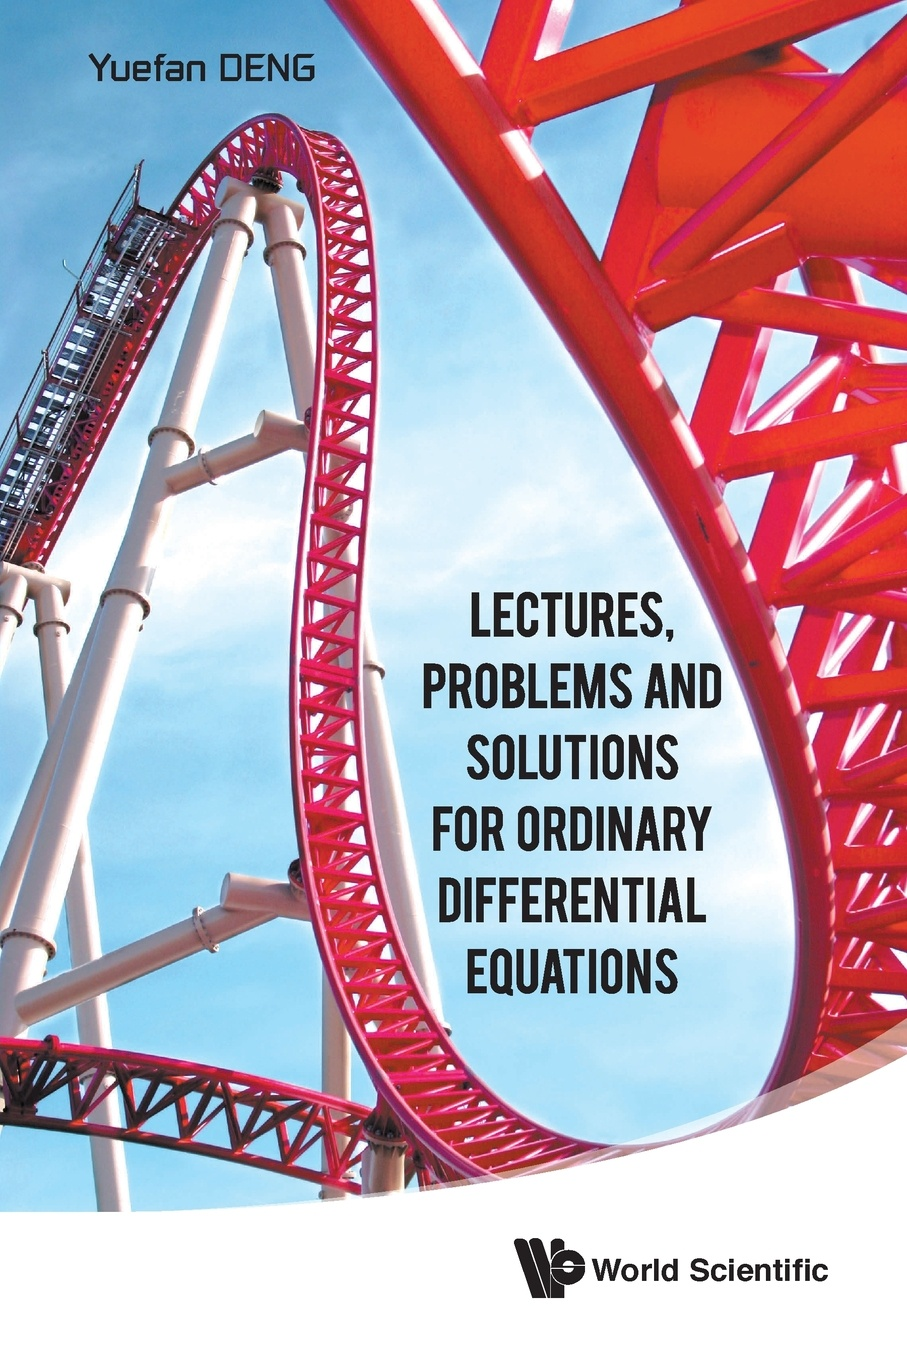 лучшая цена YUEFAN DENG Lectures, Problems and Solutions for Ordinary Differential Equations